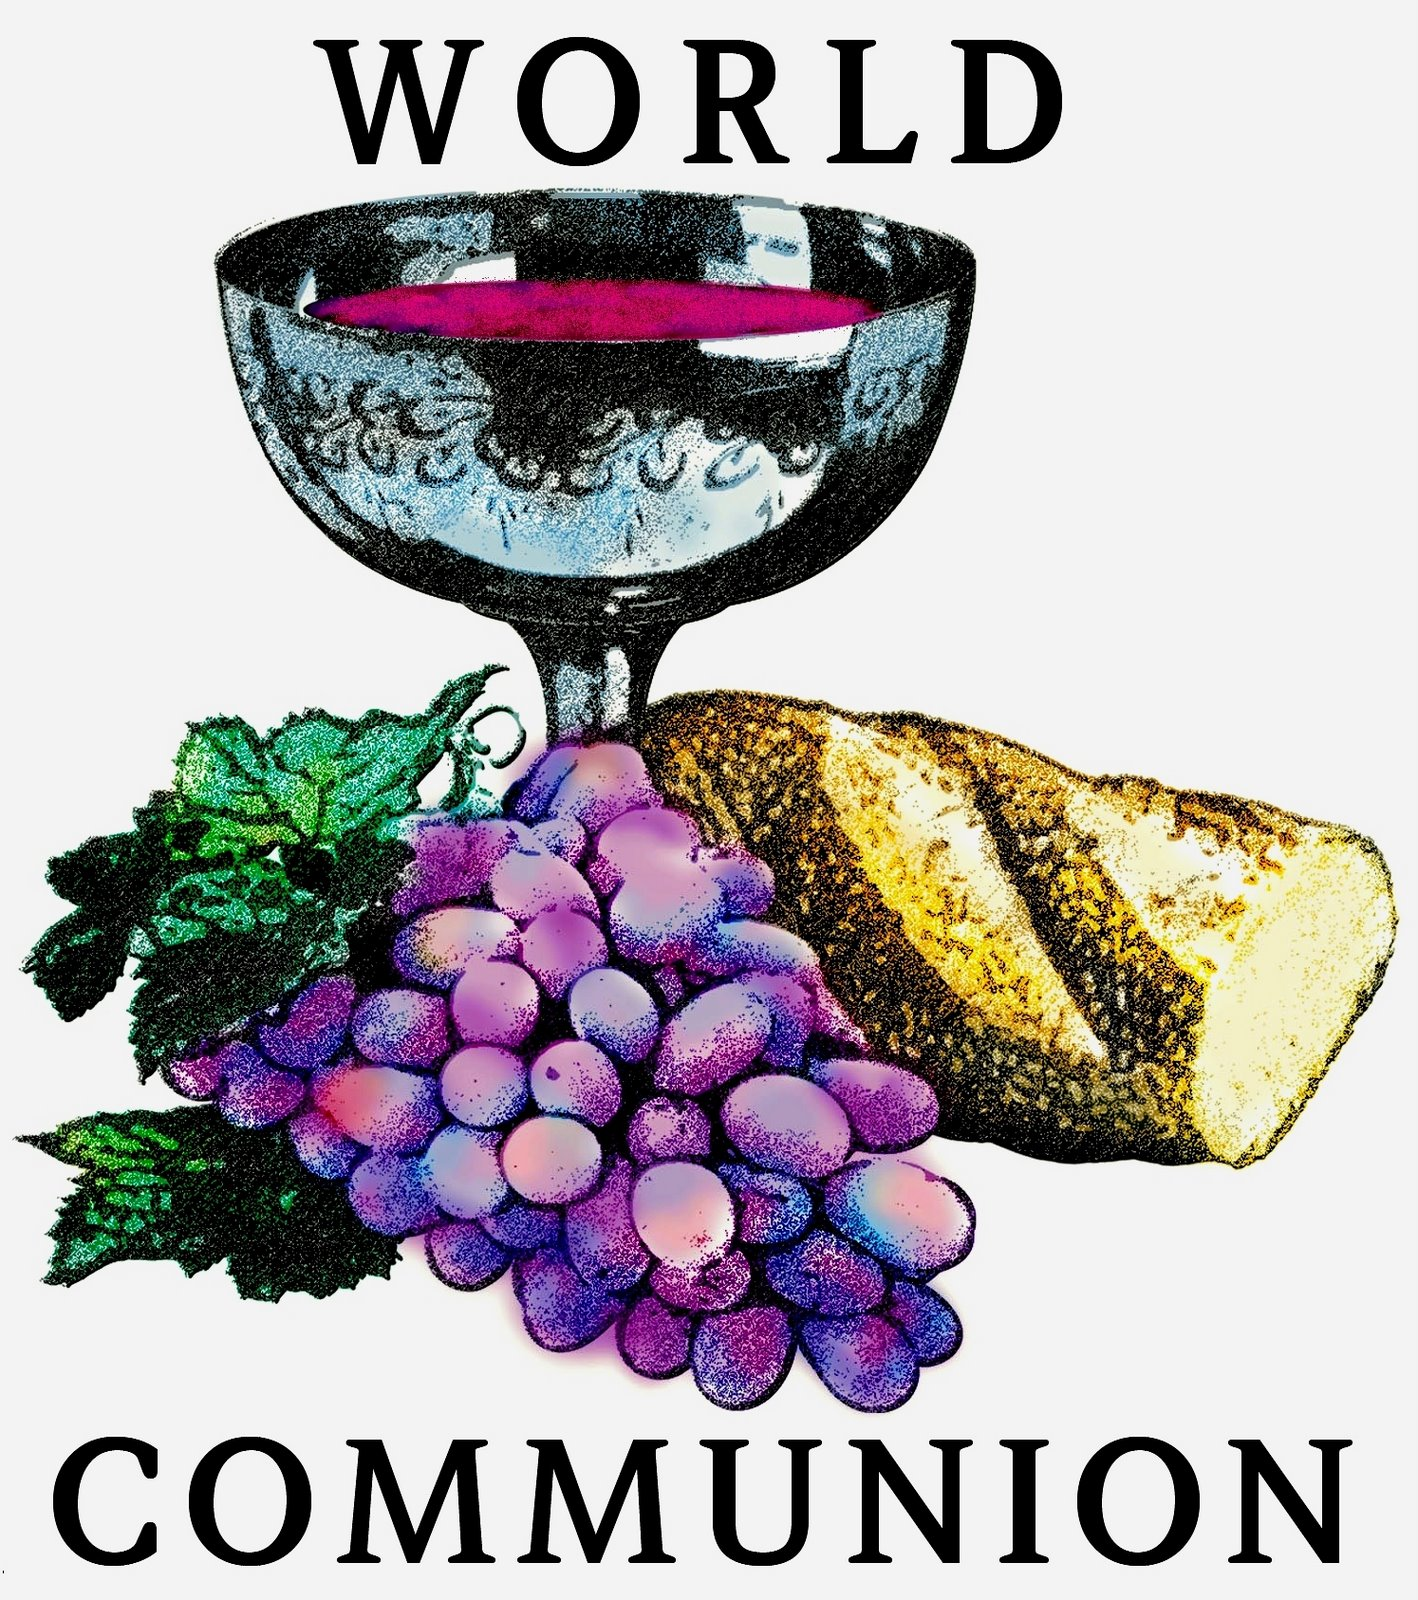 World Communion Clipart · World Communion Sunday Clipart.